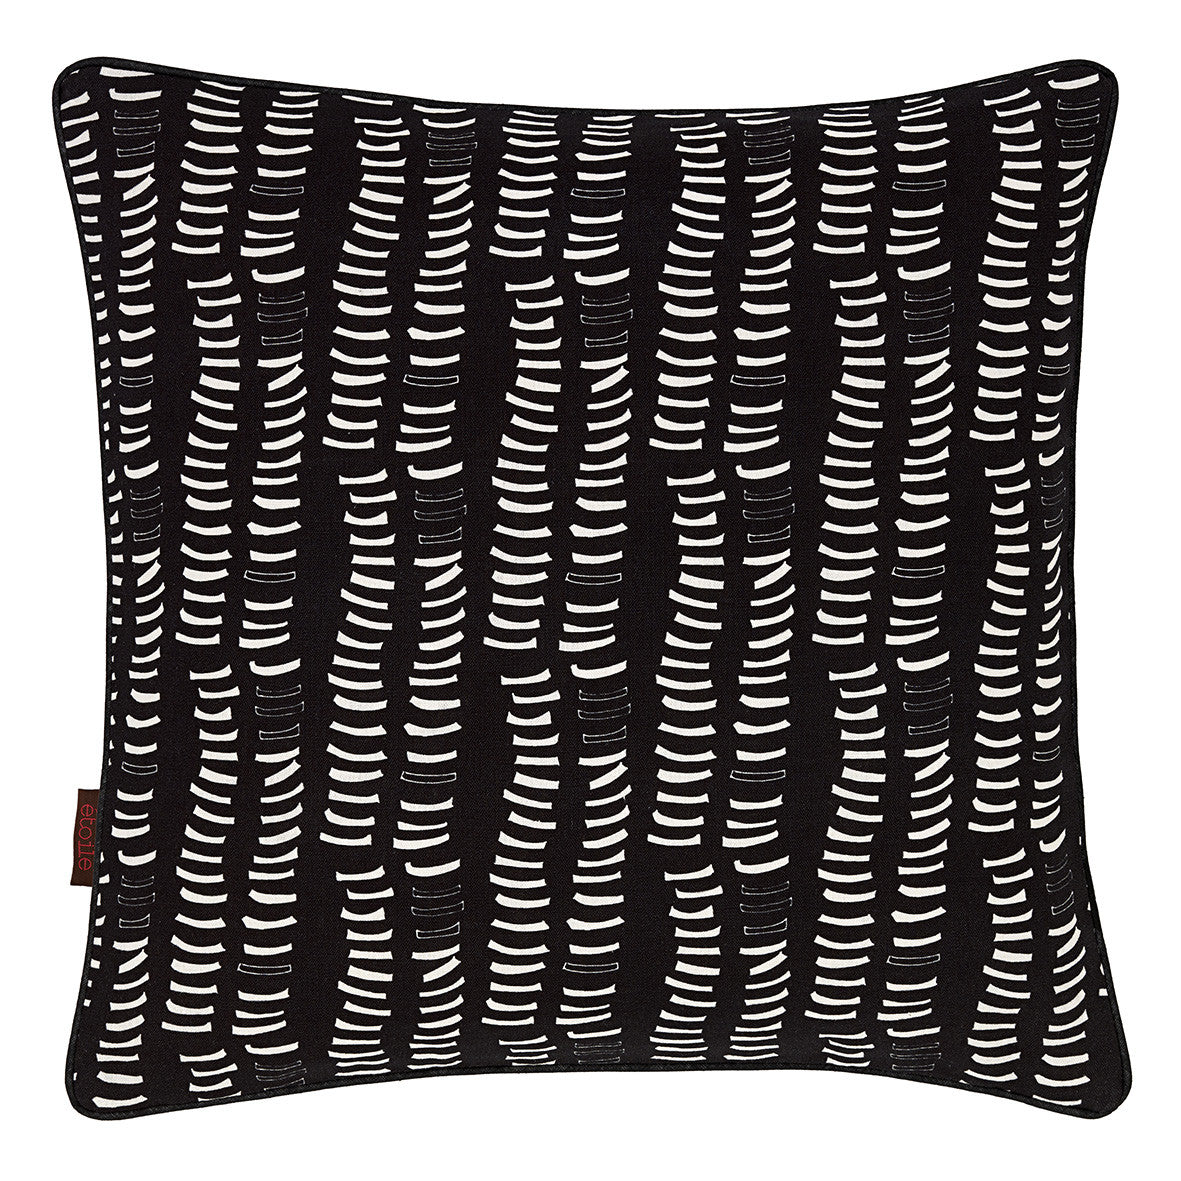 Graphic Adams Rib Pattern Linen Union Printed Throw Pillow in Black and White